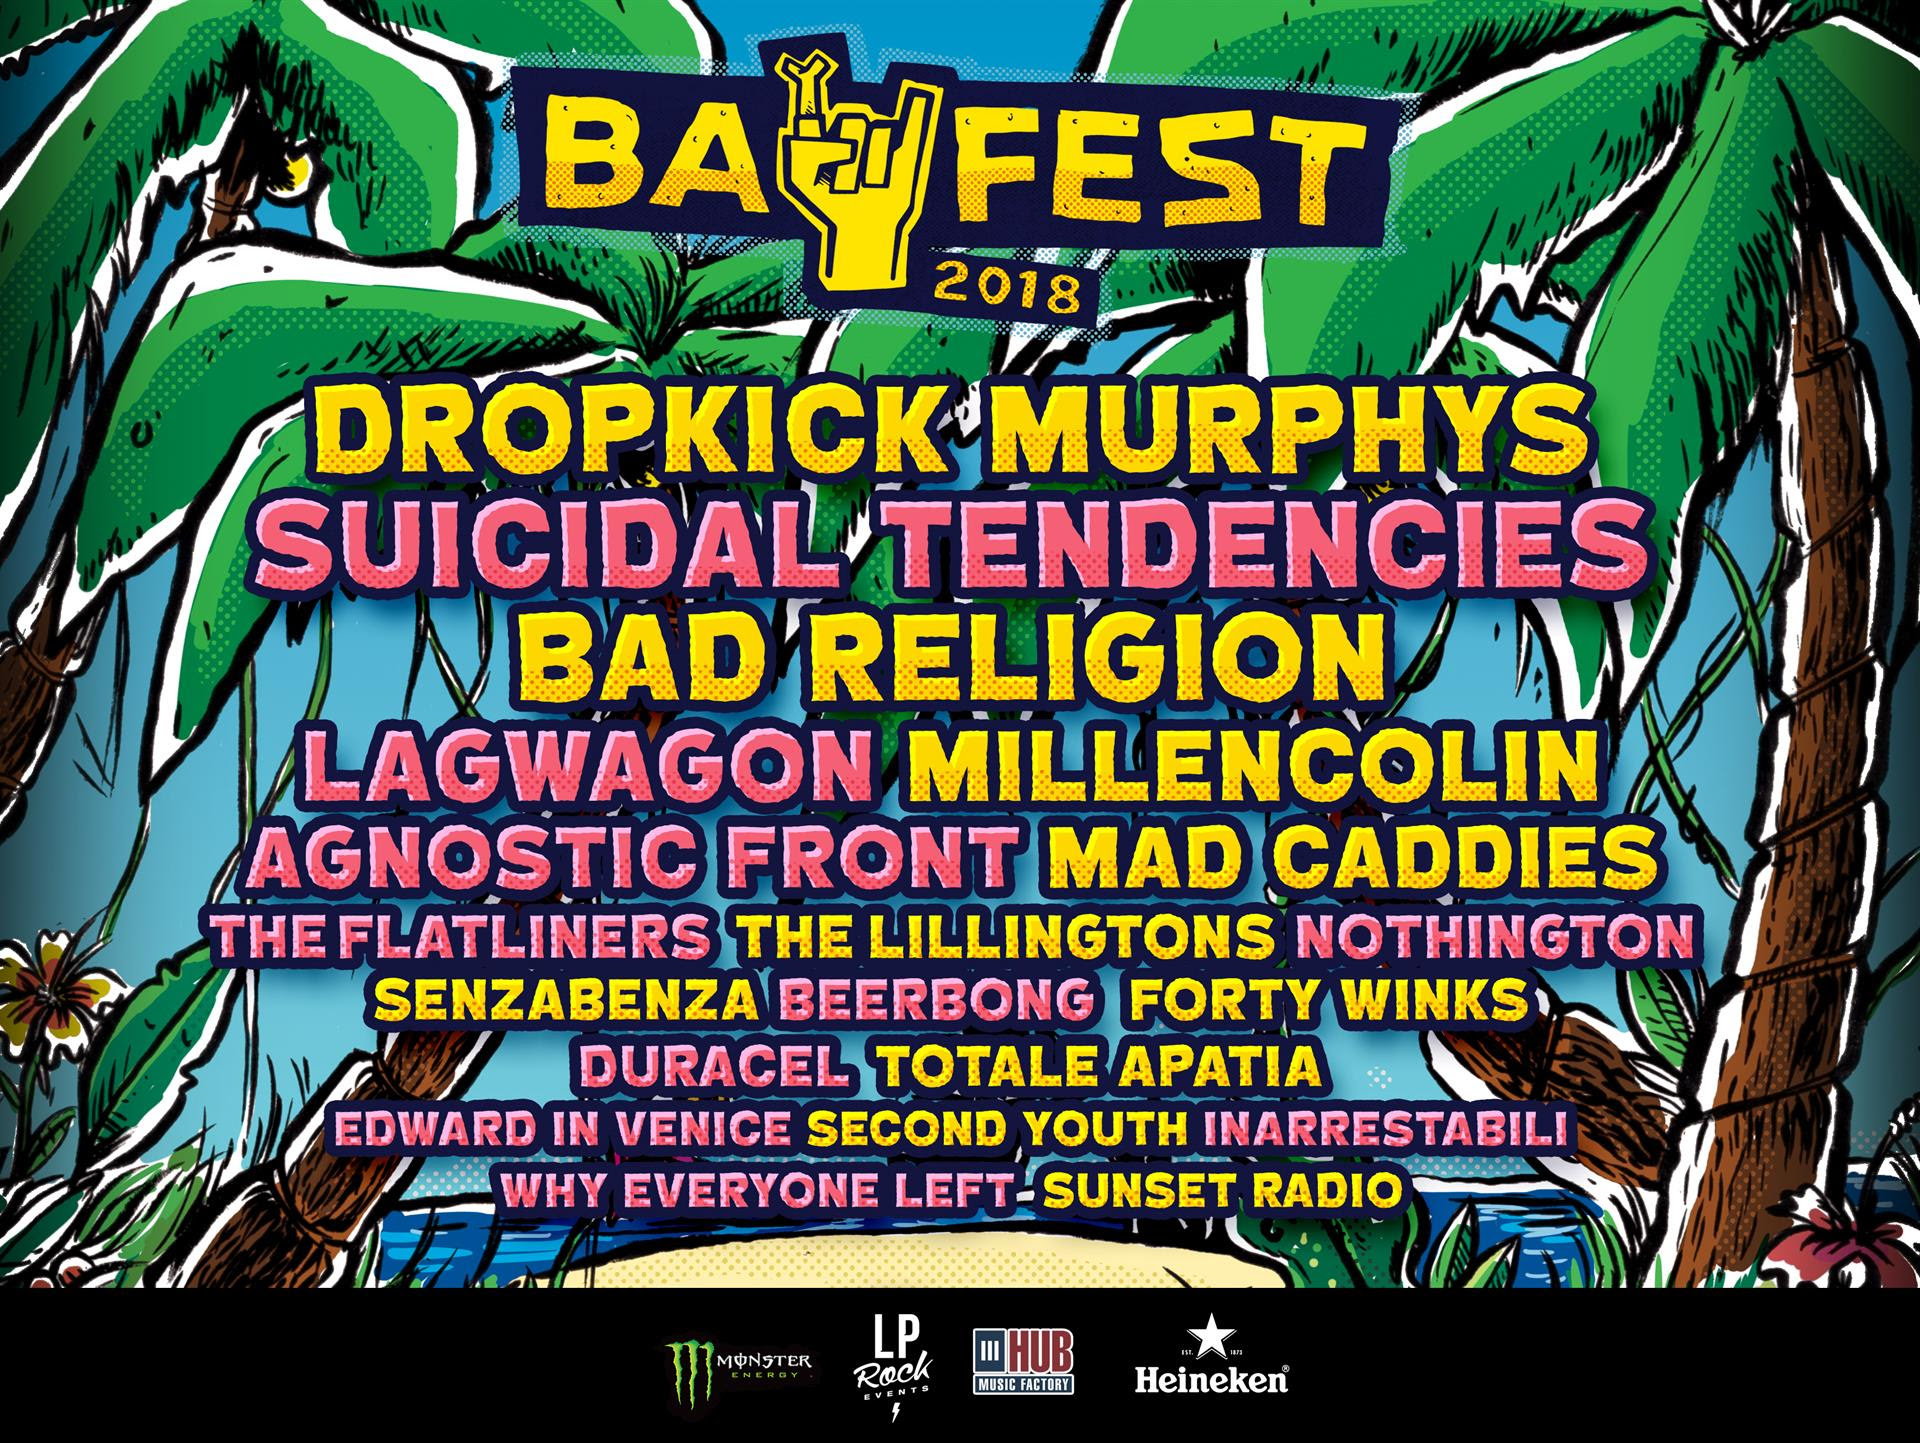 Bay Fest 2018, Bay Fest 2018 lineup, Bay Fest 2018 bands, bayfestsummer, bayfest18, Bay Fest Bellaria Igea Marina 12 13 14 Agosto 2018, LP Rock Events, Andrea Cantelli, sickandsound, hardcore, hardcore punk, punk rock, Dropkick Murphys, Agnostic Front, Suicidal Tendencies, Bad Religion, Millencolin, Lagwagon, Mad Caddies, The Lillingtons, Beerpong, Forty Winks, Duracel, Why Everyone Left, The Flatliners, Second Youth, Inarrestabili, Totale Apatia, Senzabenza, Edward In Venice, Sunset Radio, Bay Fest Parco Pavese Beky Bay Bellaria Igea Marina, Baycamp, Upcoming events August 2018, Upcoming festivals August 2018, punk rock festival, punk rock festivals 2018, hardcore festival, hardcore festivals 2018, punk rock festivals Italy, Upcoming events August 2018, UPCOMING ROCK AND METAL EVENTS AROUND THE WORLD August 2018, bayfest18, bayfestsummer, Bay Fest Parco Pavese, Andrea Ascani, Bay Fest 2018 live report, Bay Fest 2018 recensione, Bay Fest 2018 Day 1 2 3 live report, Dropkick Murphys Bay Fest 2018 live report